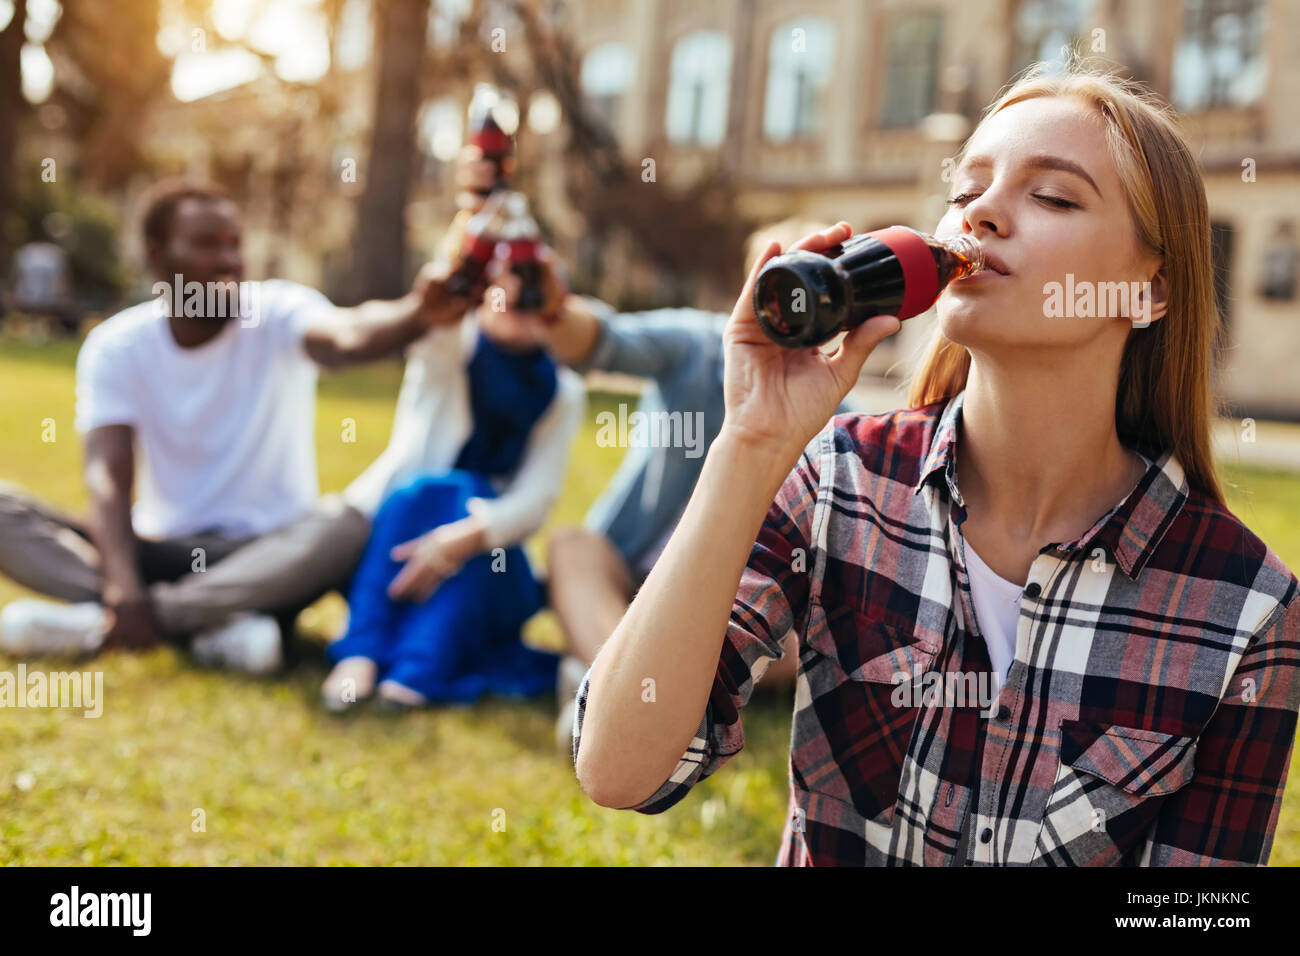 Gorgeous classy girl quenching her thirst - Stock Image